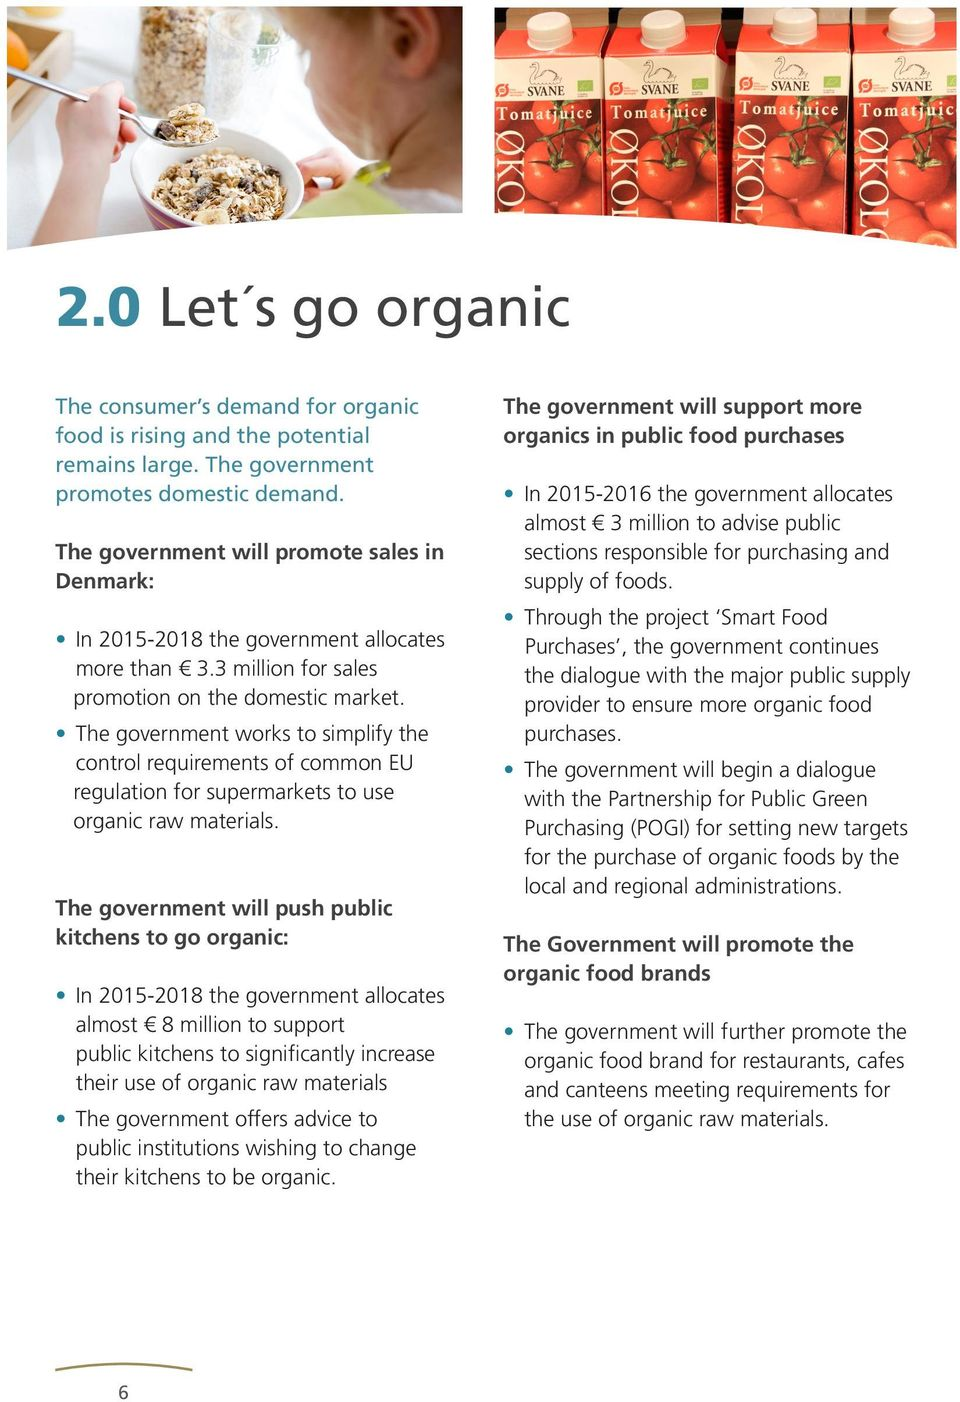 The government works to simplify the control requirements of common EU regulation for supermarkets to use organic raw materials.